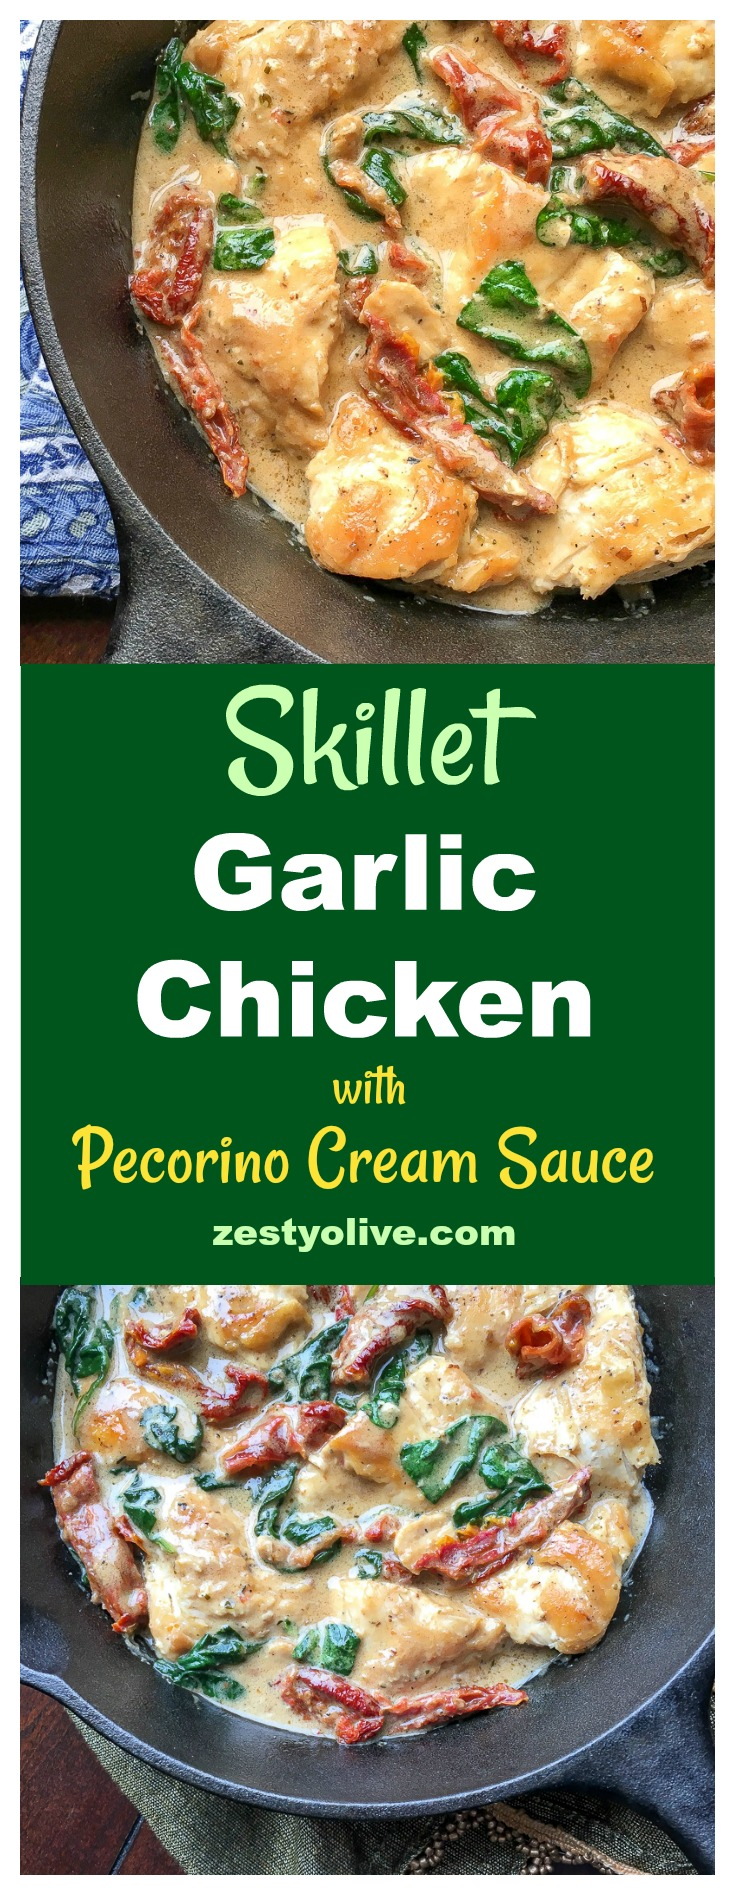 Bring a taste of Tuscany home with this simple, quick and delicious recipe for Skillet Garlic Chicken with Sun-dried Tomatoes and Pecorino Cream Sauce.